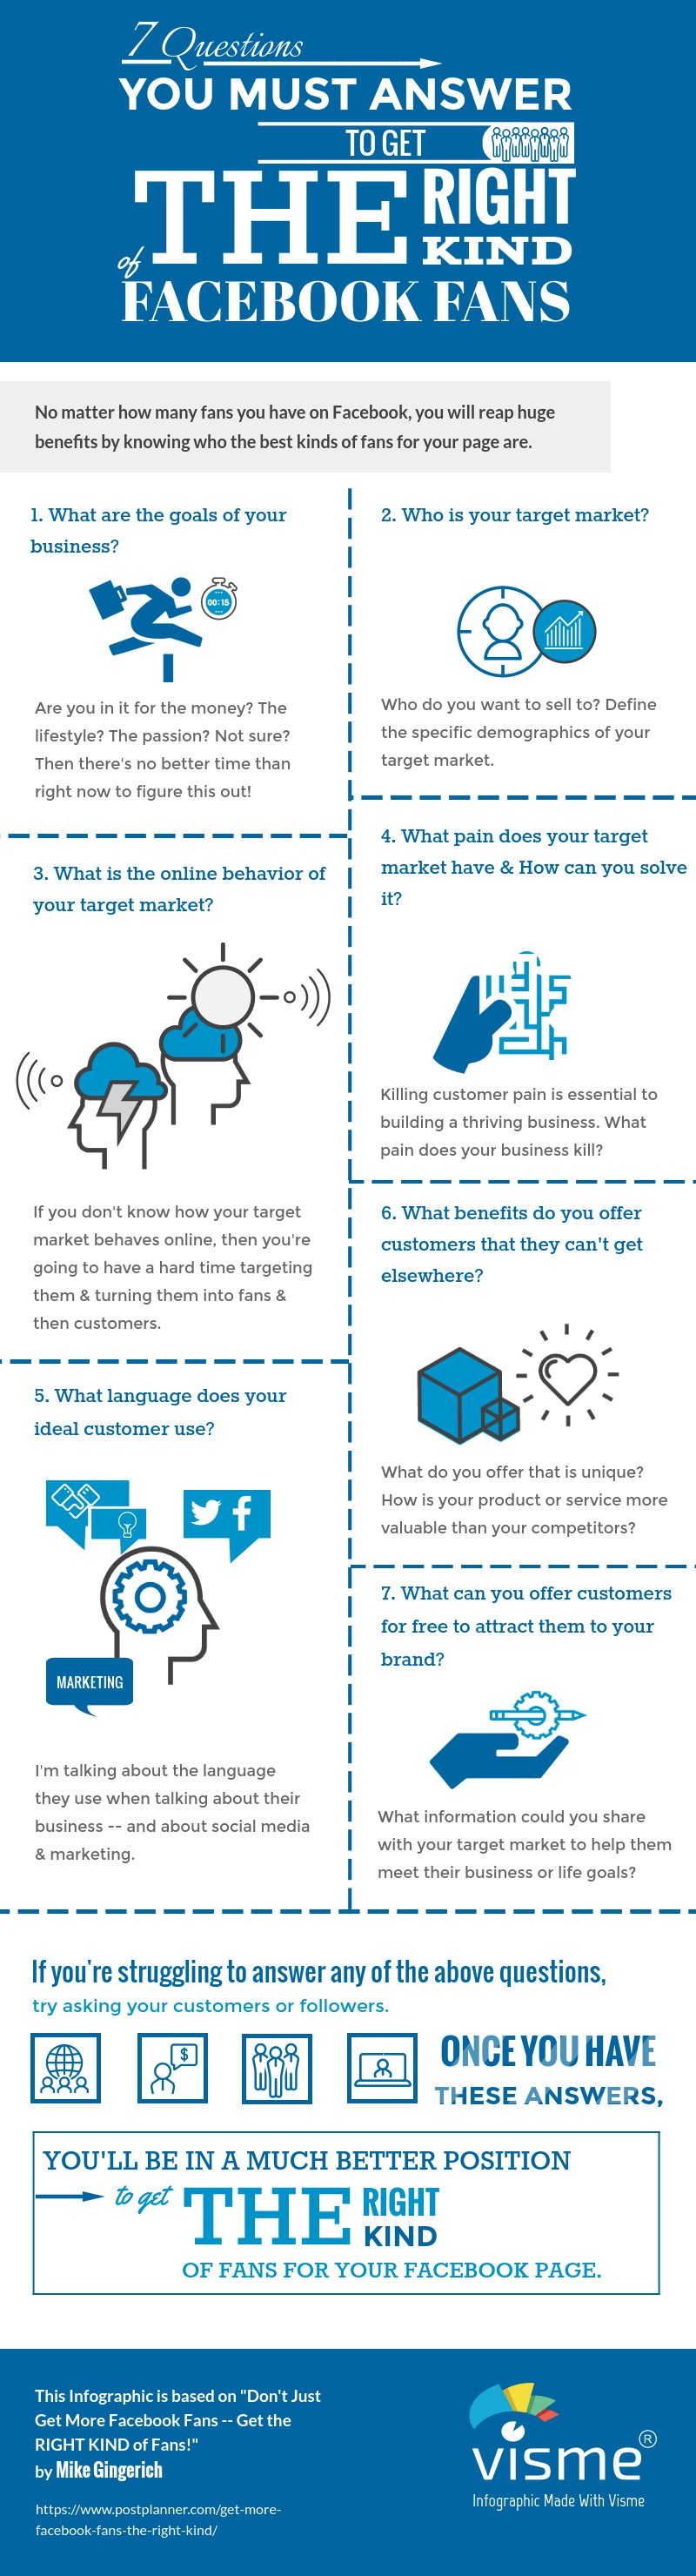 7 Questions that will Get You the Right Facebook Fans [Infographic] | Social Media Today